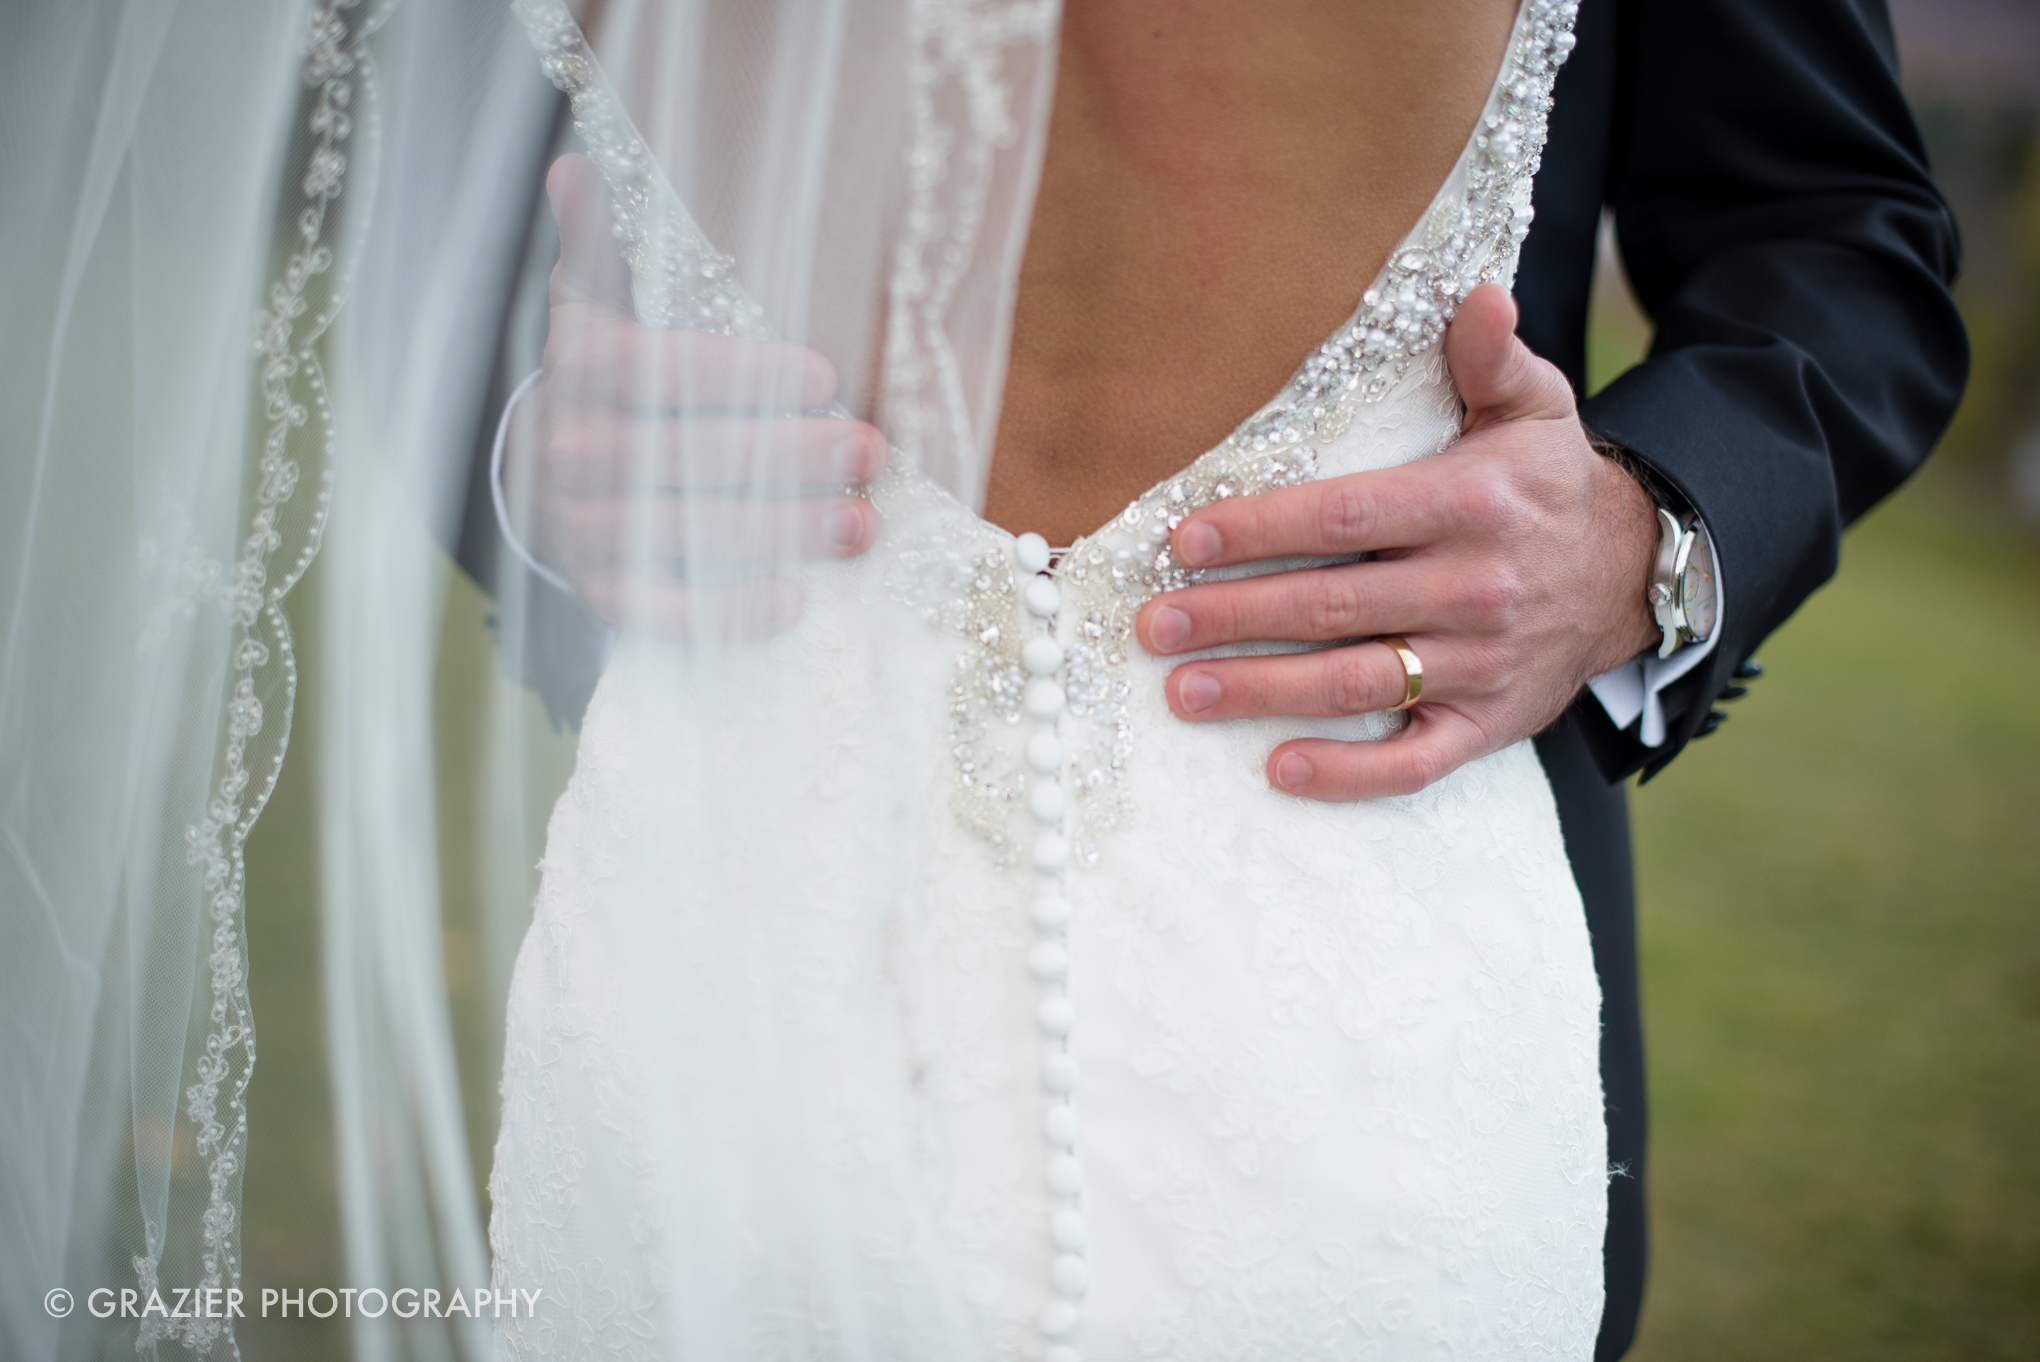 Grazier_Photography_Mount_Washington_Wedding_151017_449.jpg